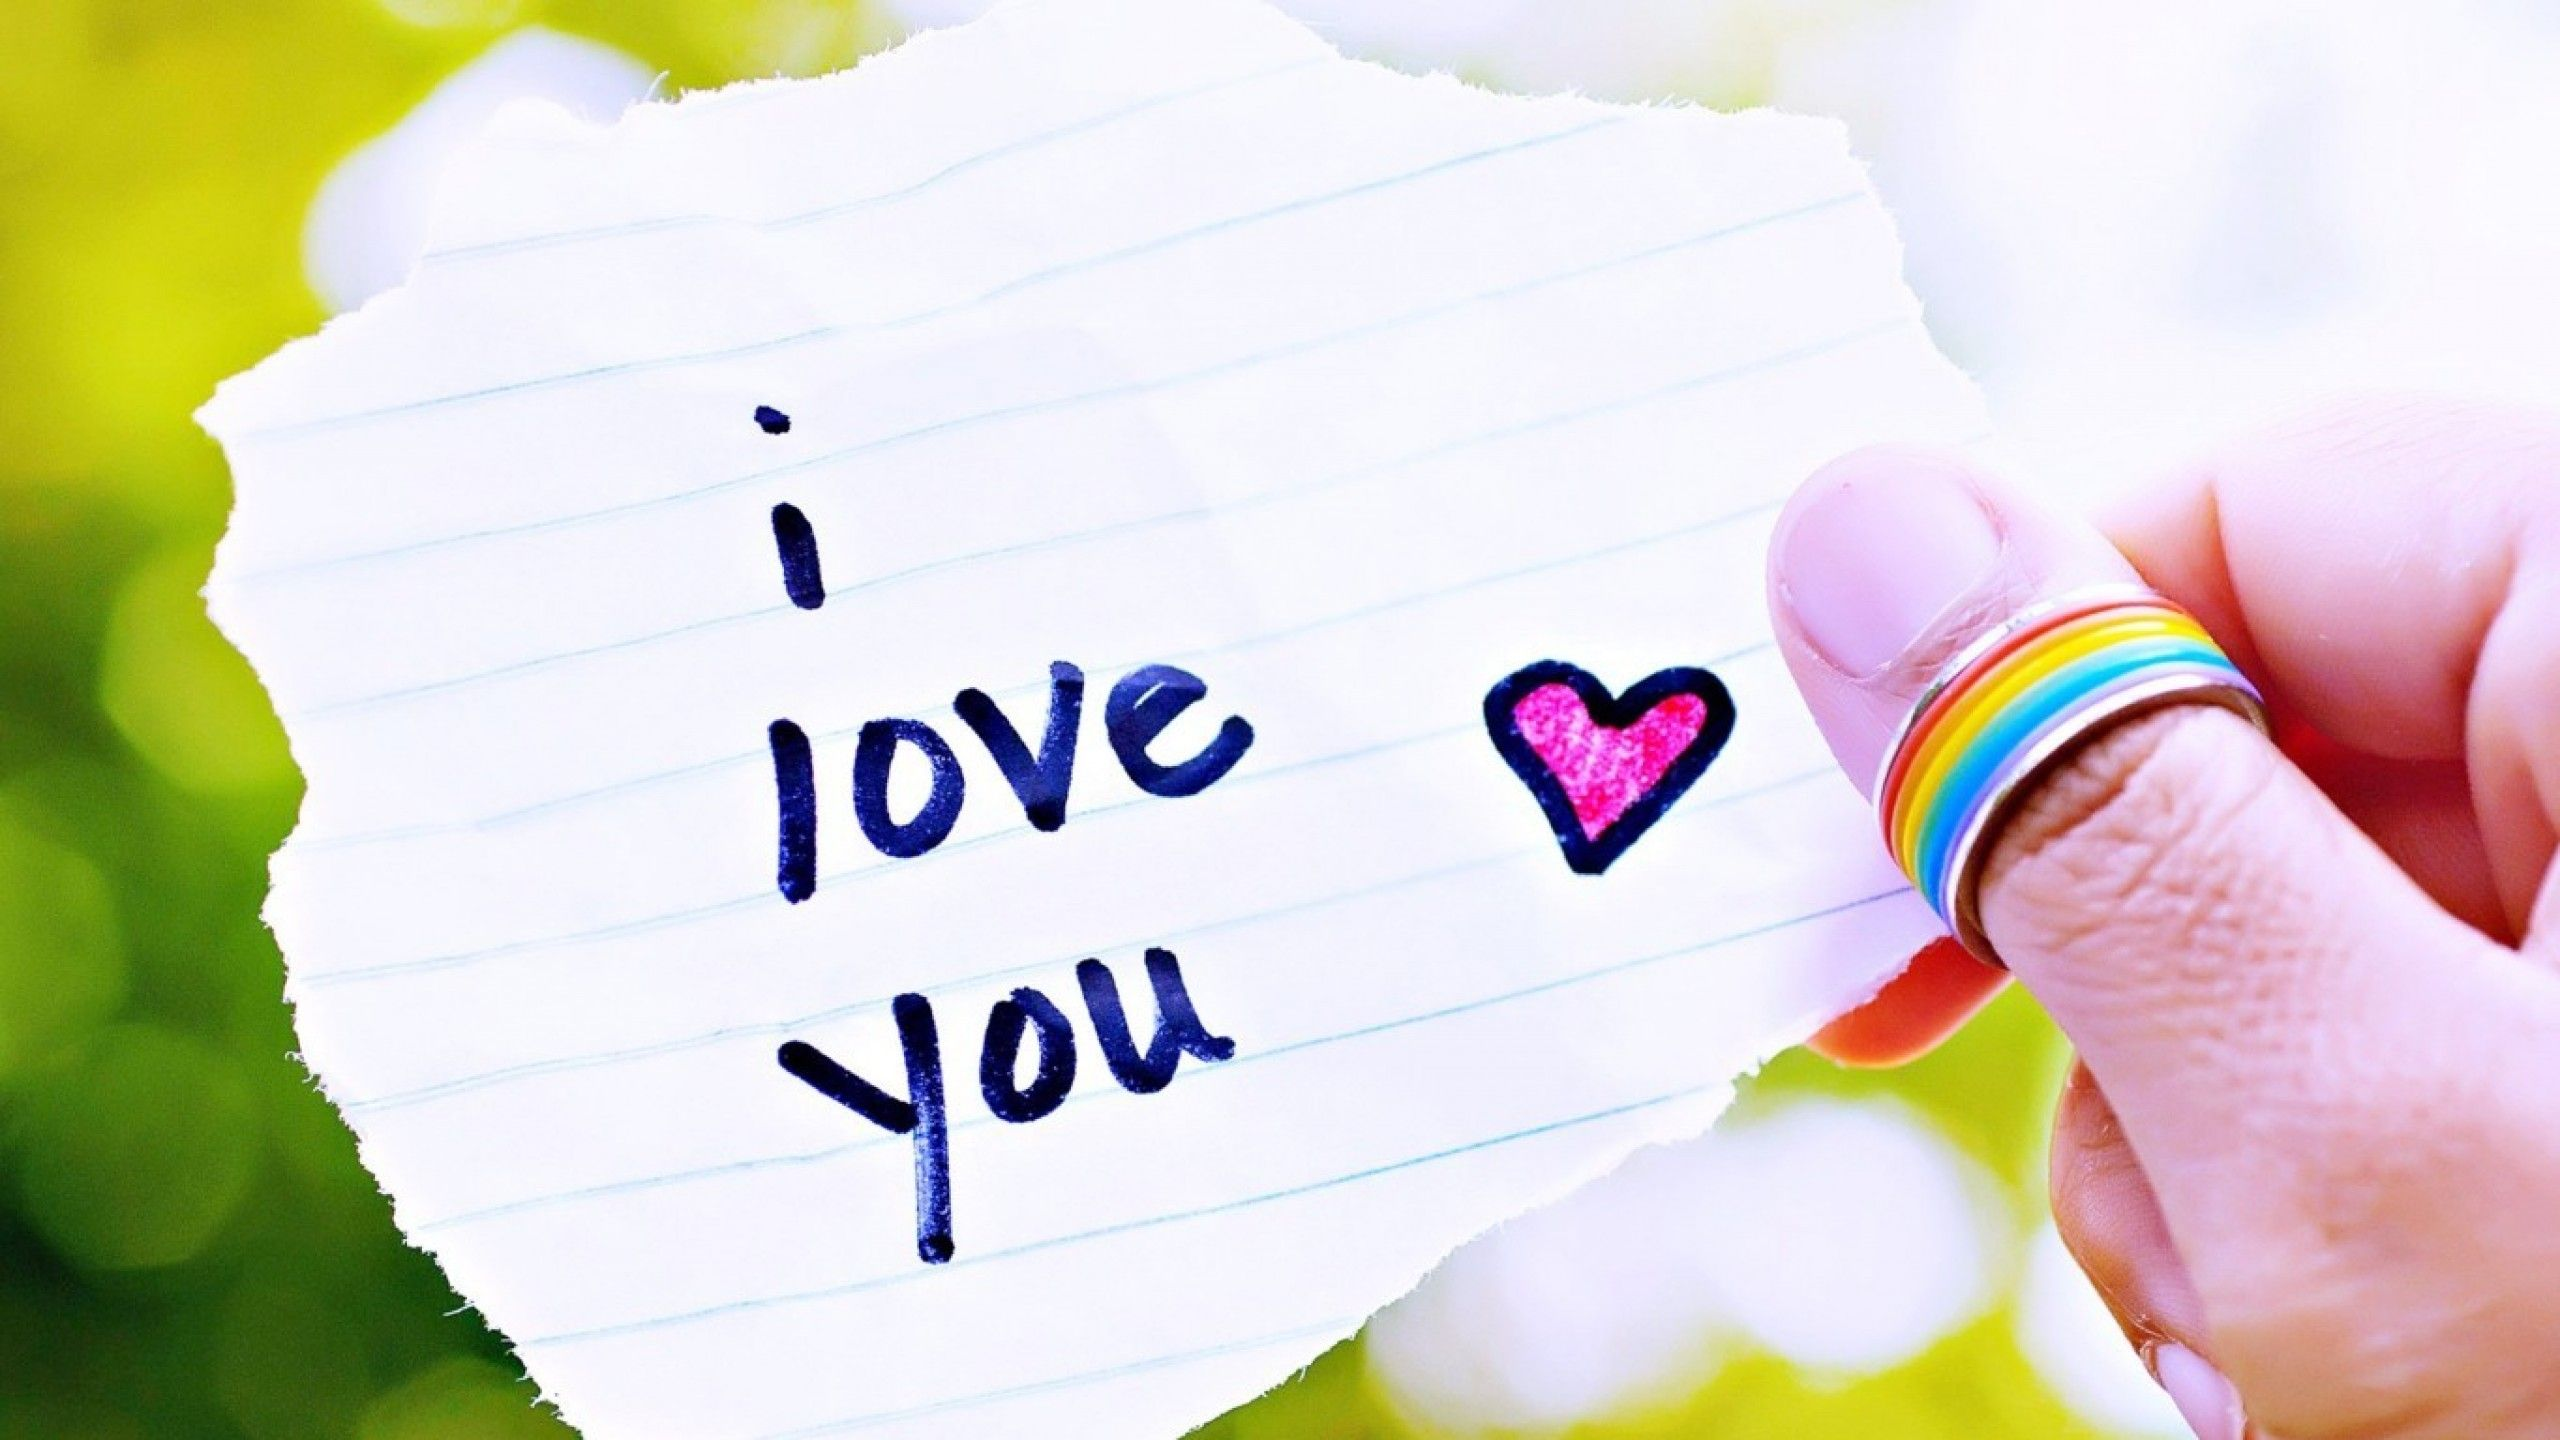 I Love You Hd Wallpapers Hd Images Pictures Quotes Photos